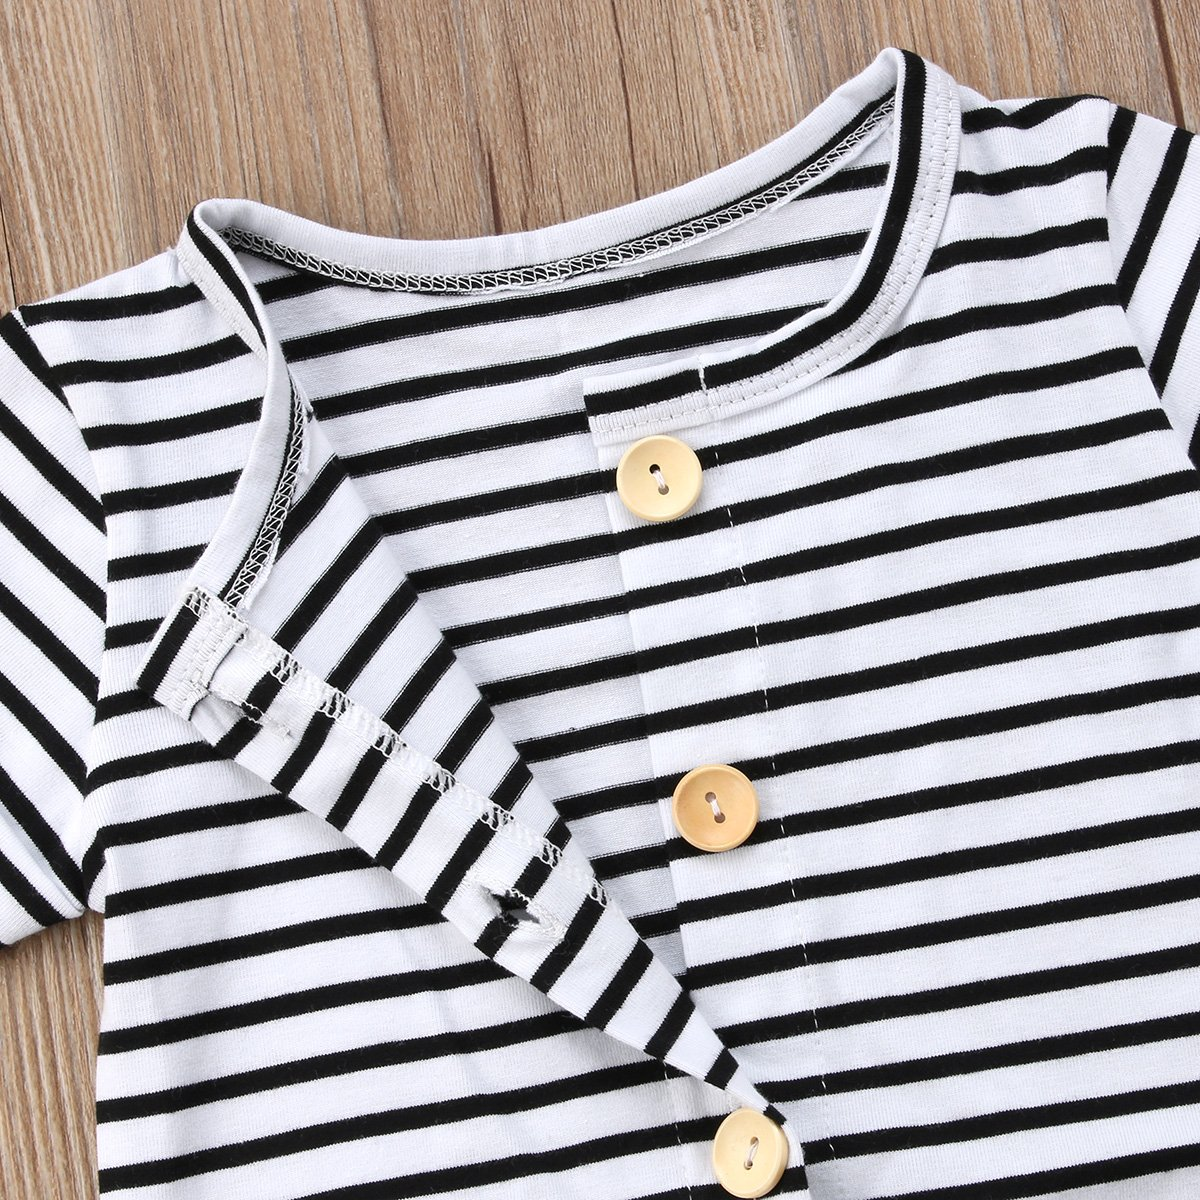 Urkutoba Baby Girls Romper Knitted Ruffle Long Sleeve Jumpsuit Baby Kids Girl Romper Autumn Winter Casual Clothing (0-6 Months, Striped&Buttons) by Urkutoba (Image #6)